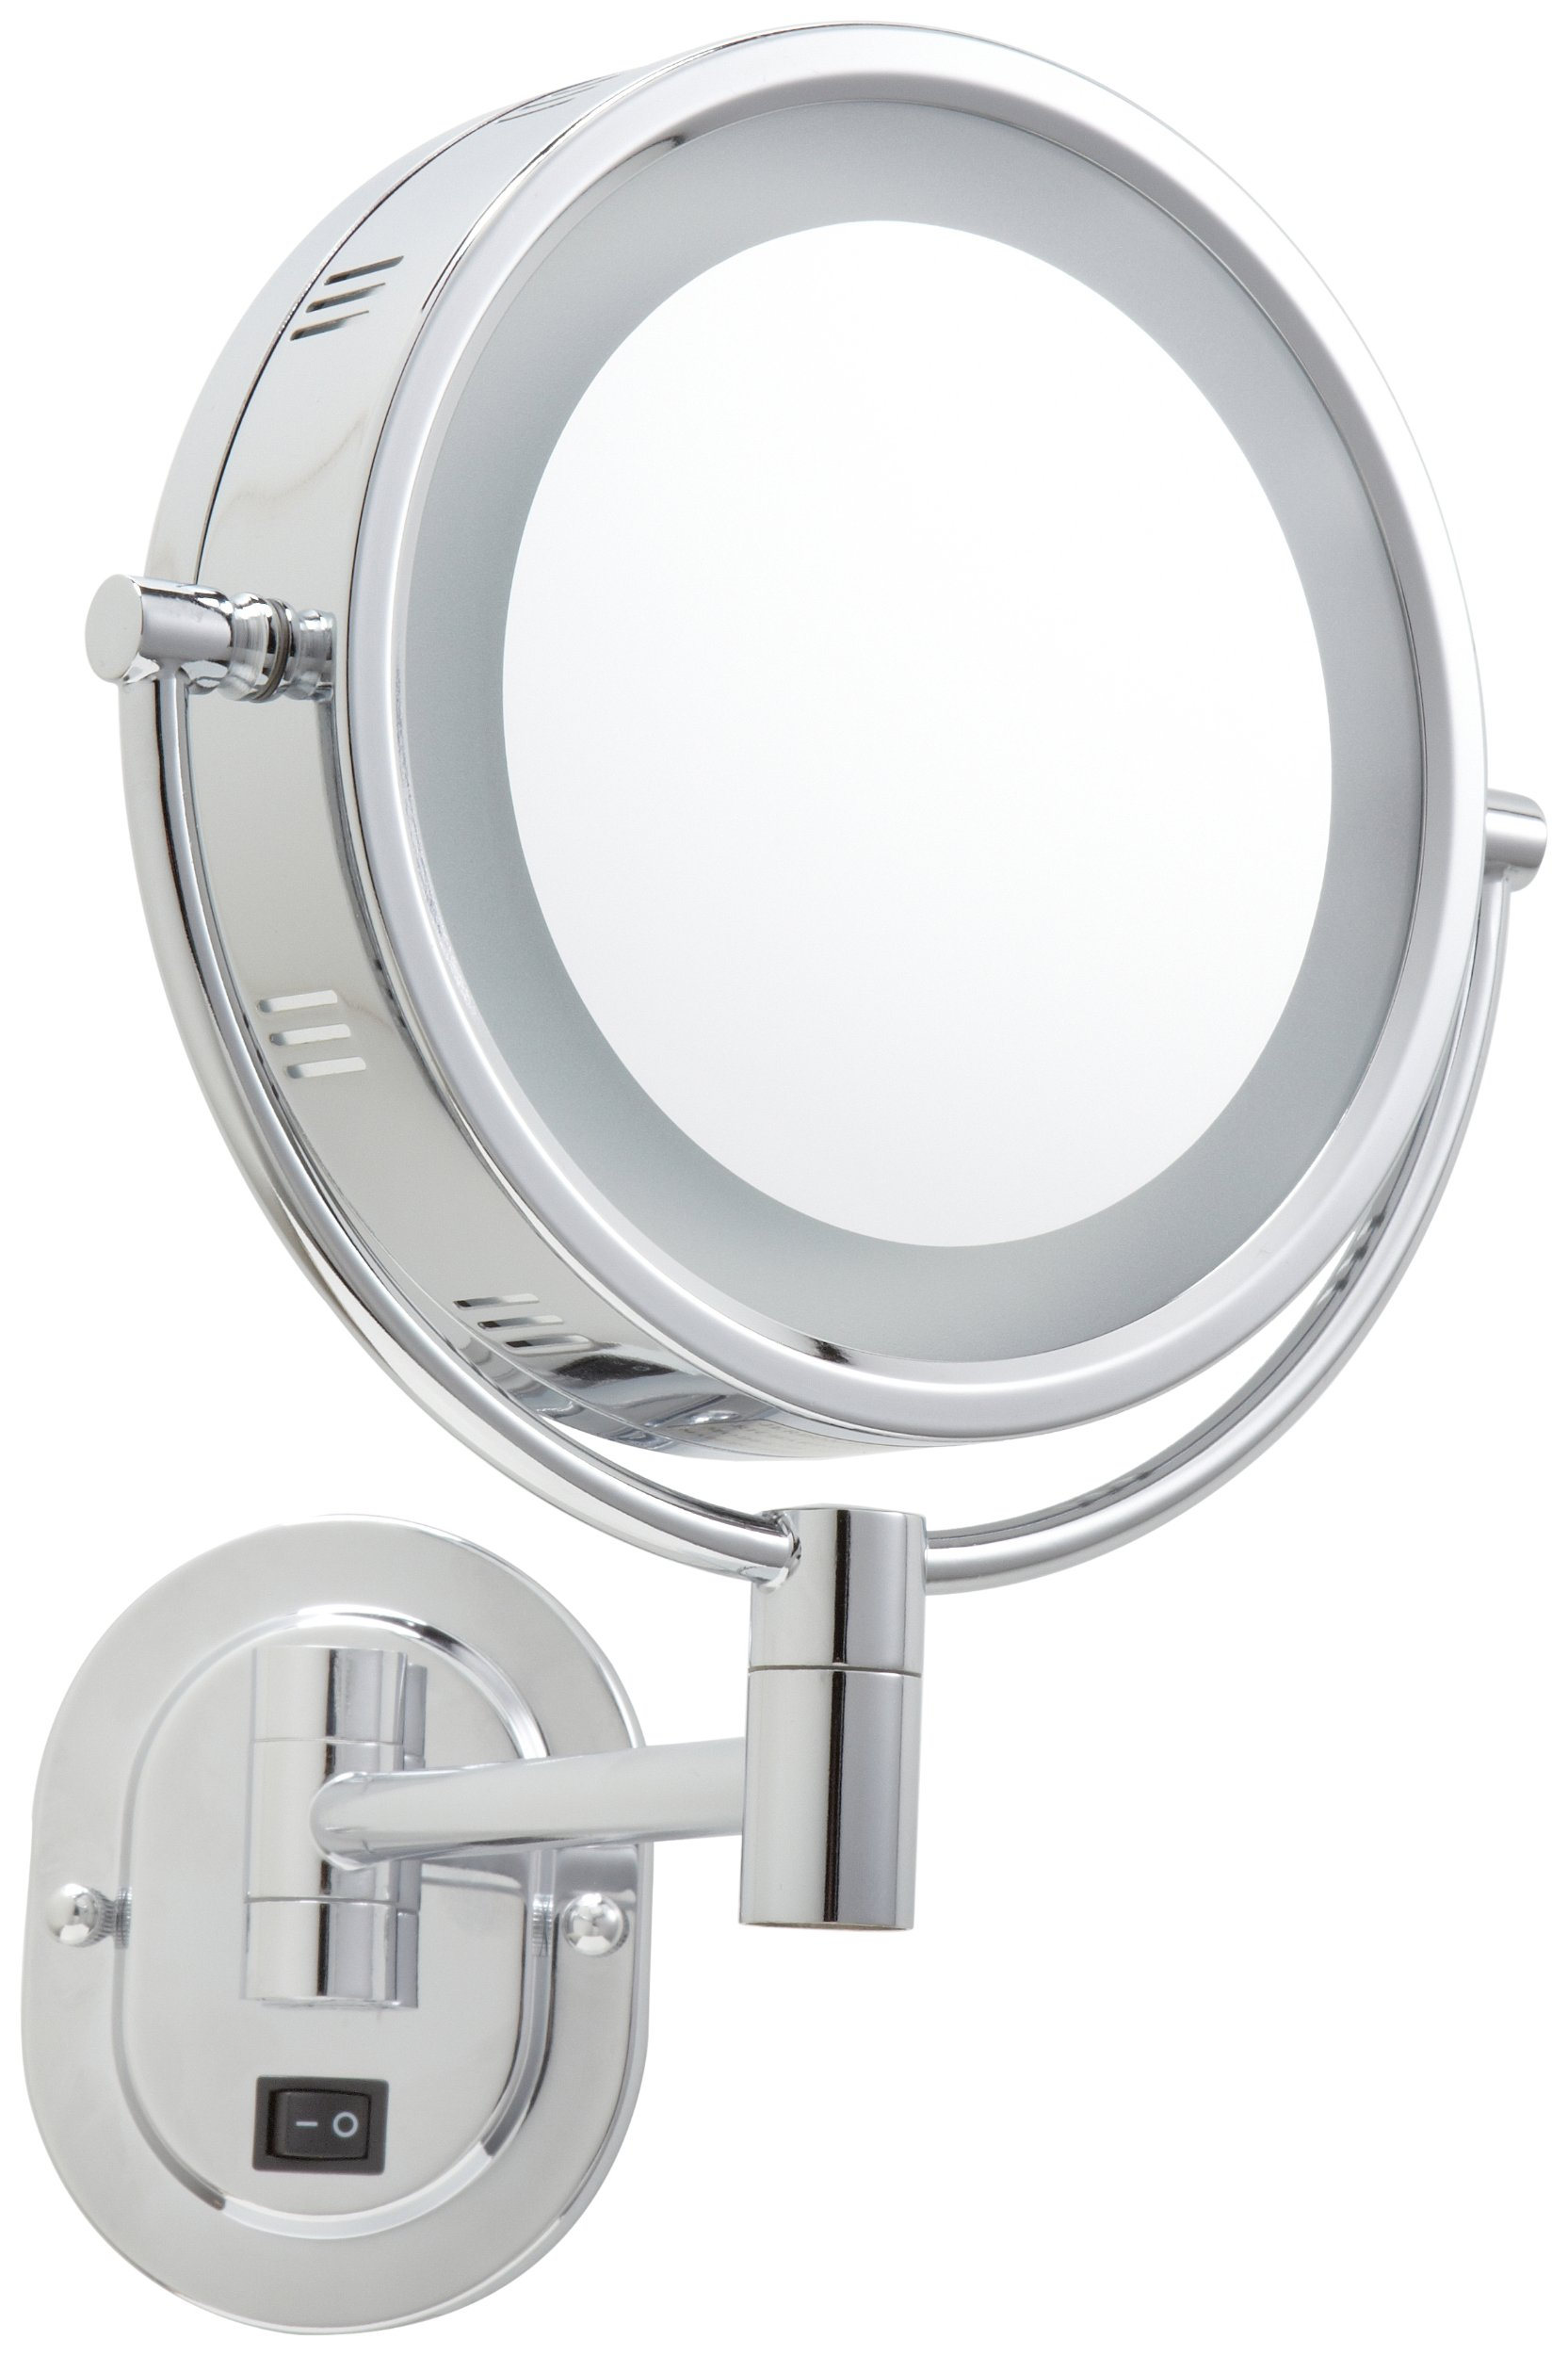 Jerdon HL165CD 8-Inch Lighted Wall Mount Direct Wire Makeup Mirror with 5x Magnification, Chrome Finish by Jerdon (Image #3)